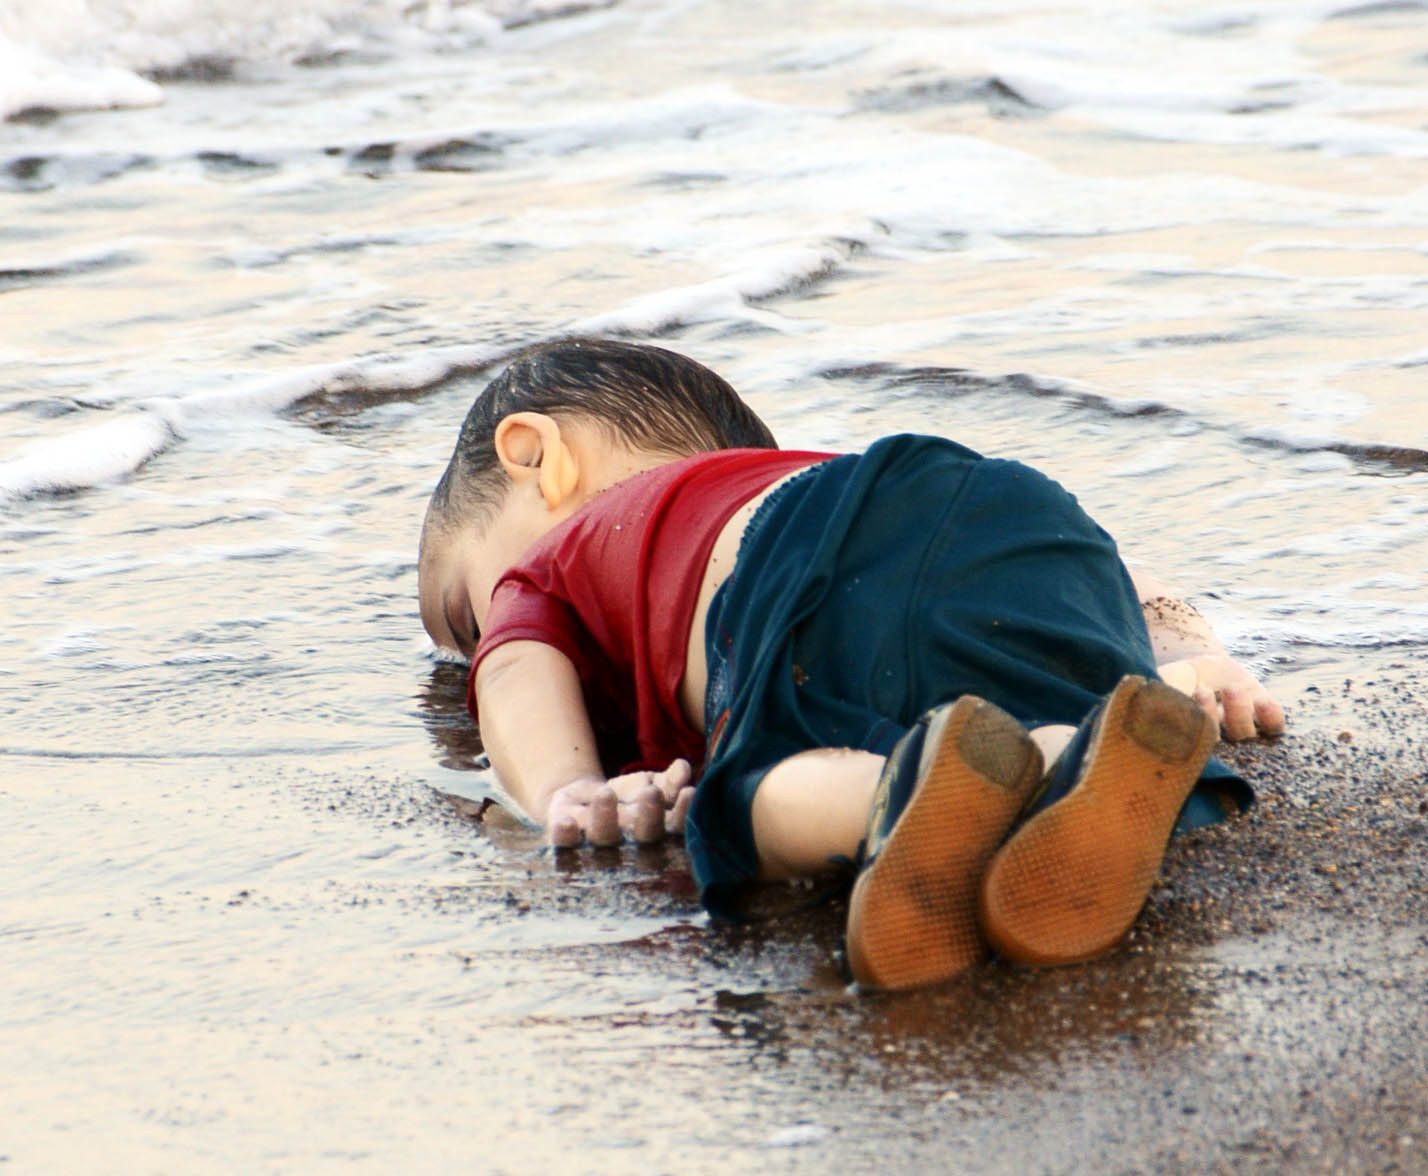 Devastating images of Syrian boy washed up on Turkish shore show desperation of refugees